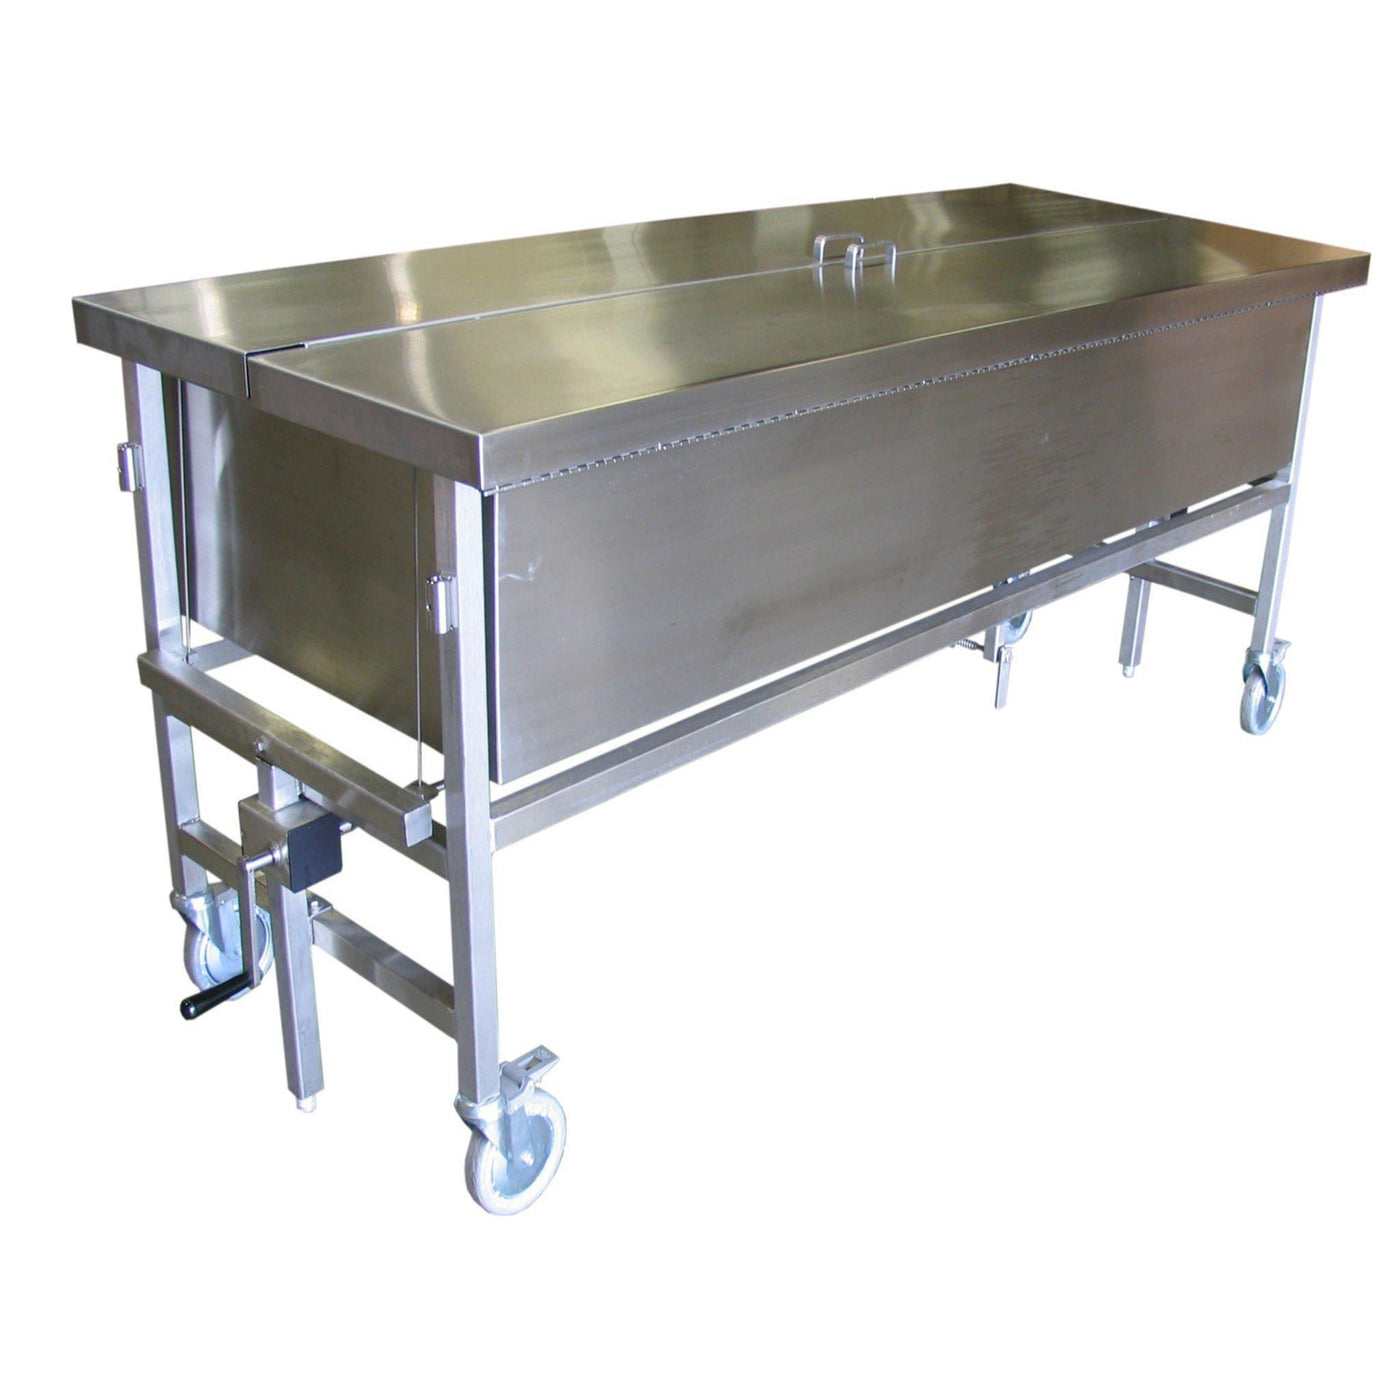 Crank Elevated Immersion Dissection Table-Anatomy Dissection Tables-Mortech Manufacturing Company Inc. Quality Stainless Steel Autopsy, Morgue, Funeral Home, Necropsy, Veterinary / Anatomy, Dissection Equipment and Accessories